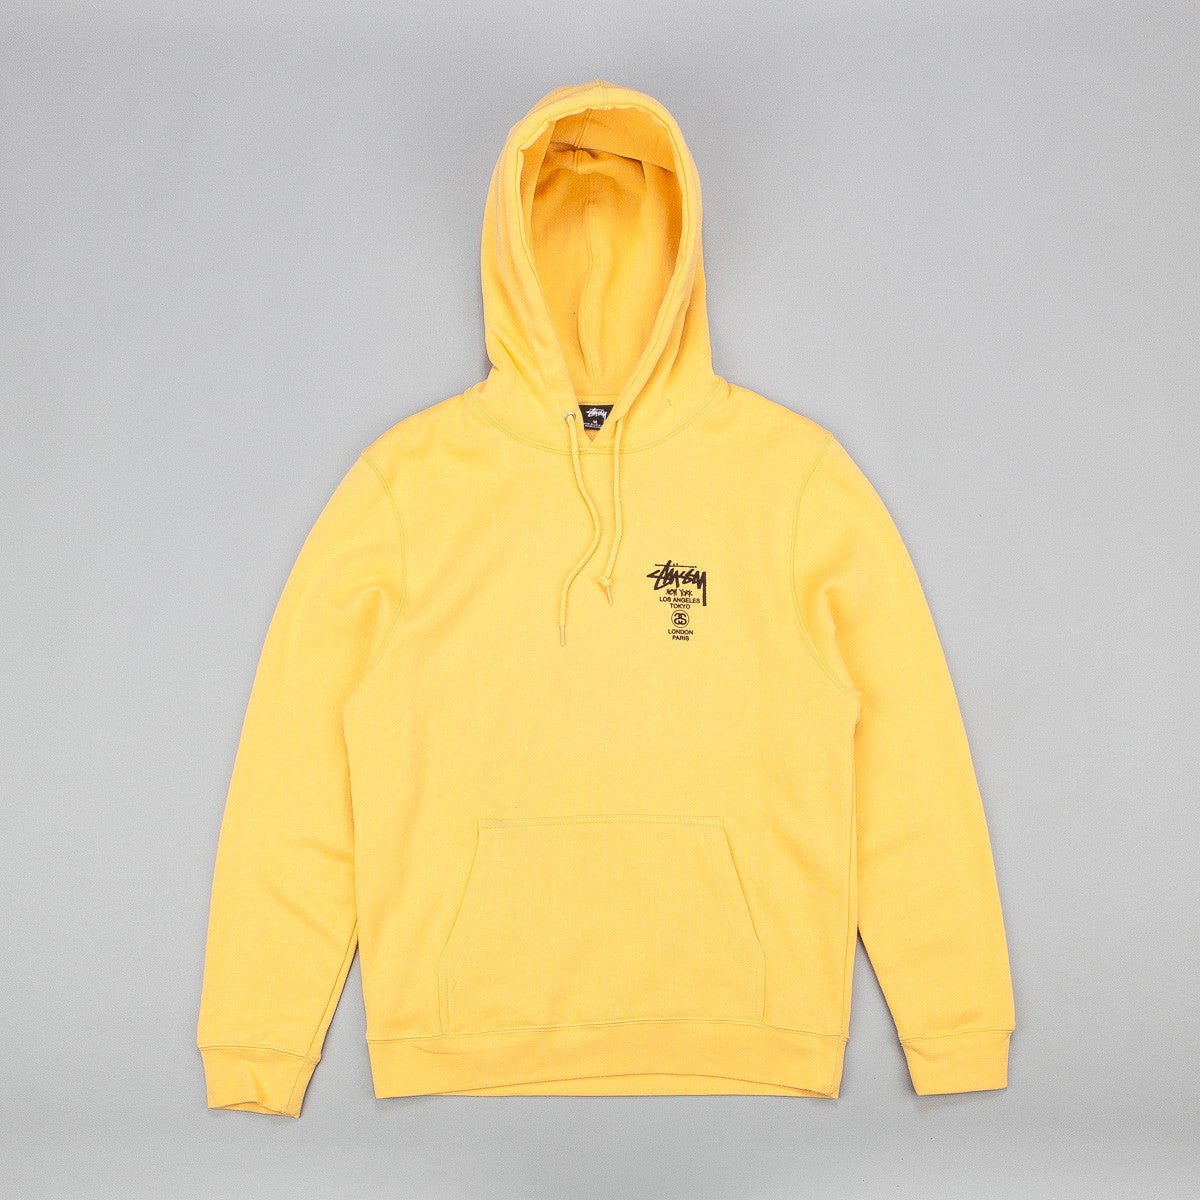 Stussy World Tour Hooded Sweatshirt